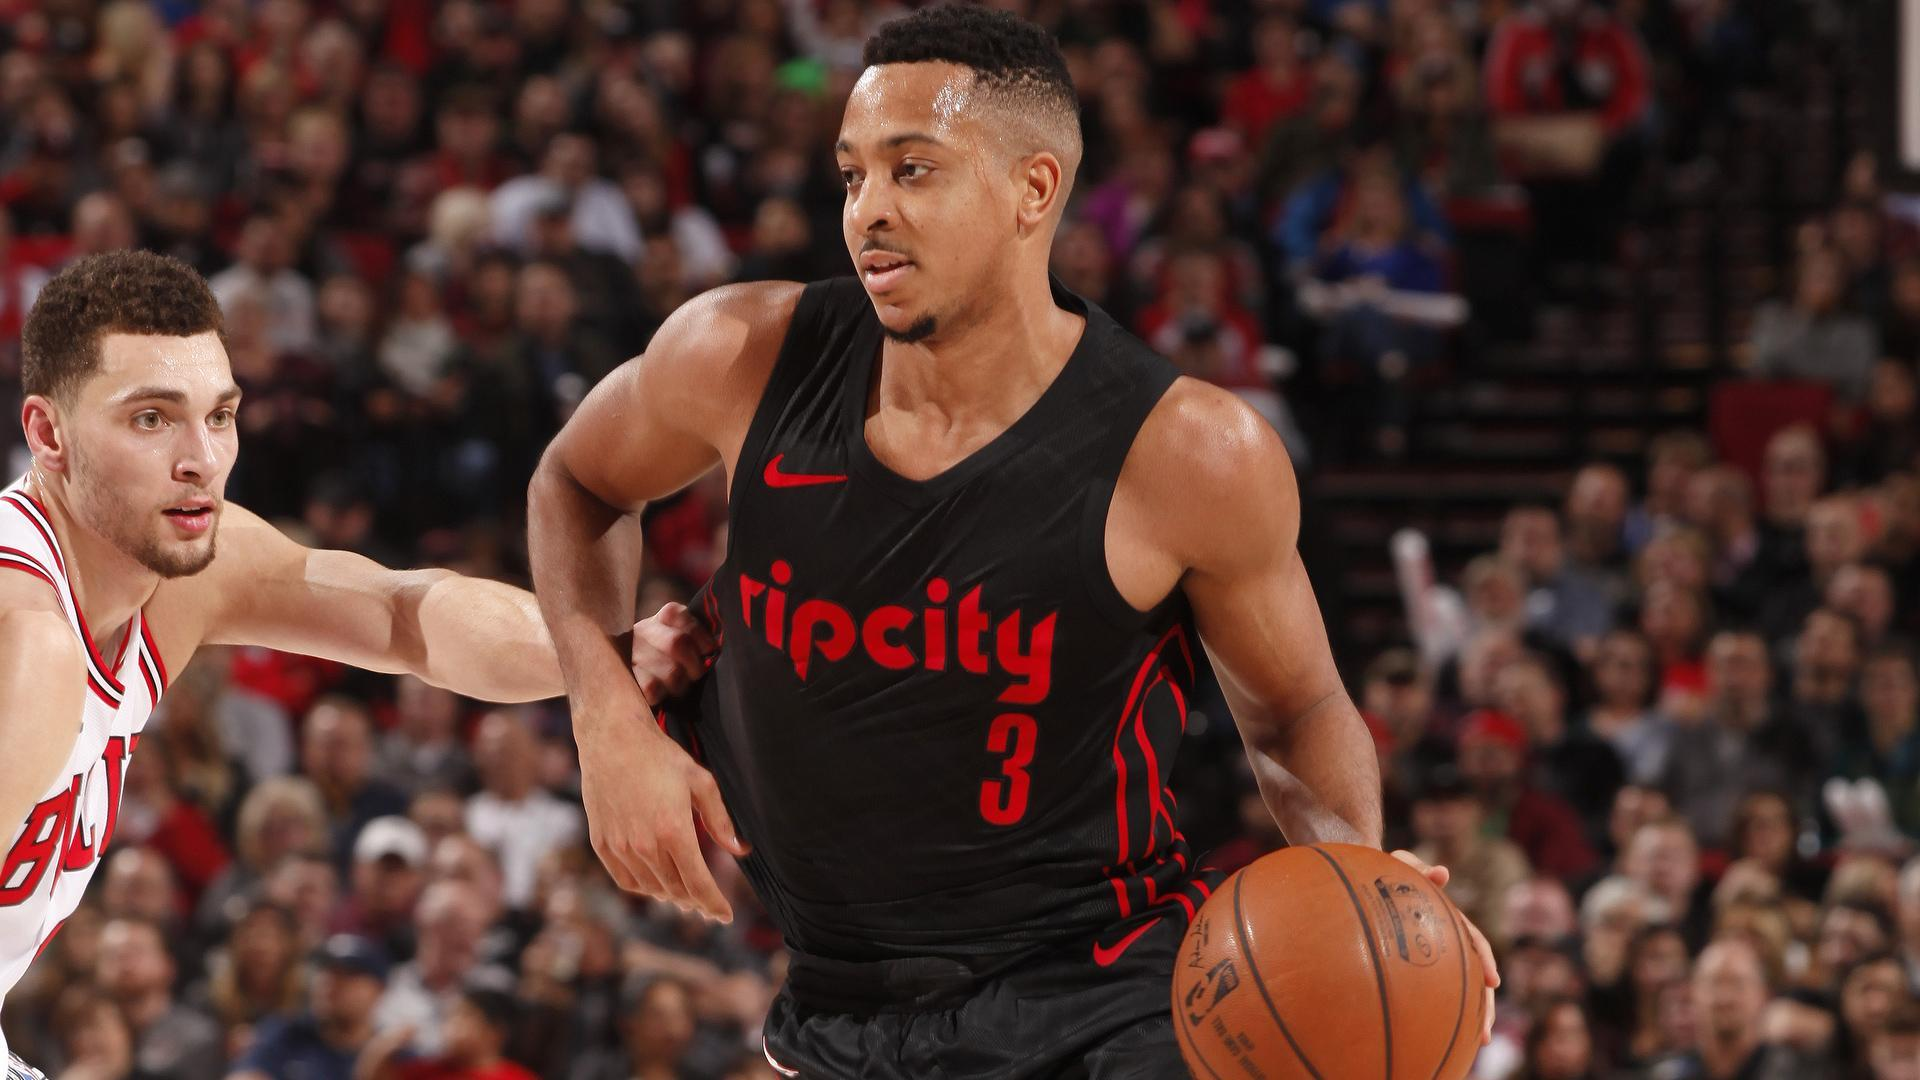 Damian Lillard stays hot with 28 points Tuesday for Blazers